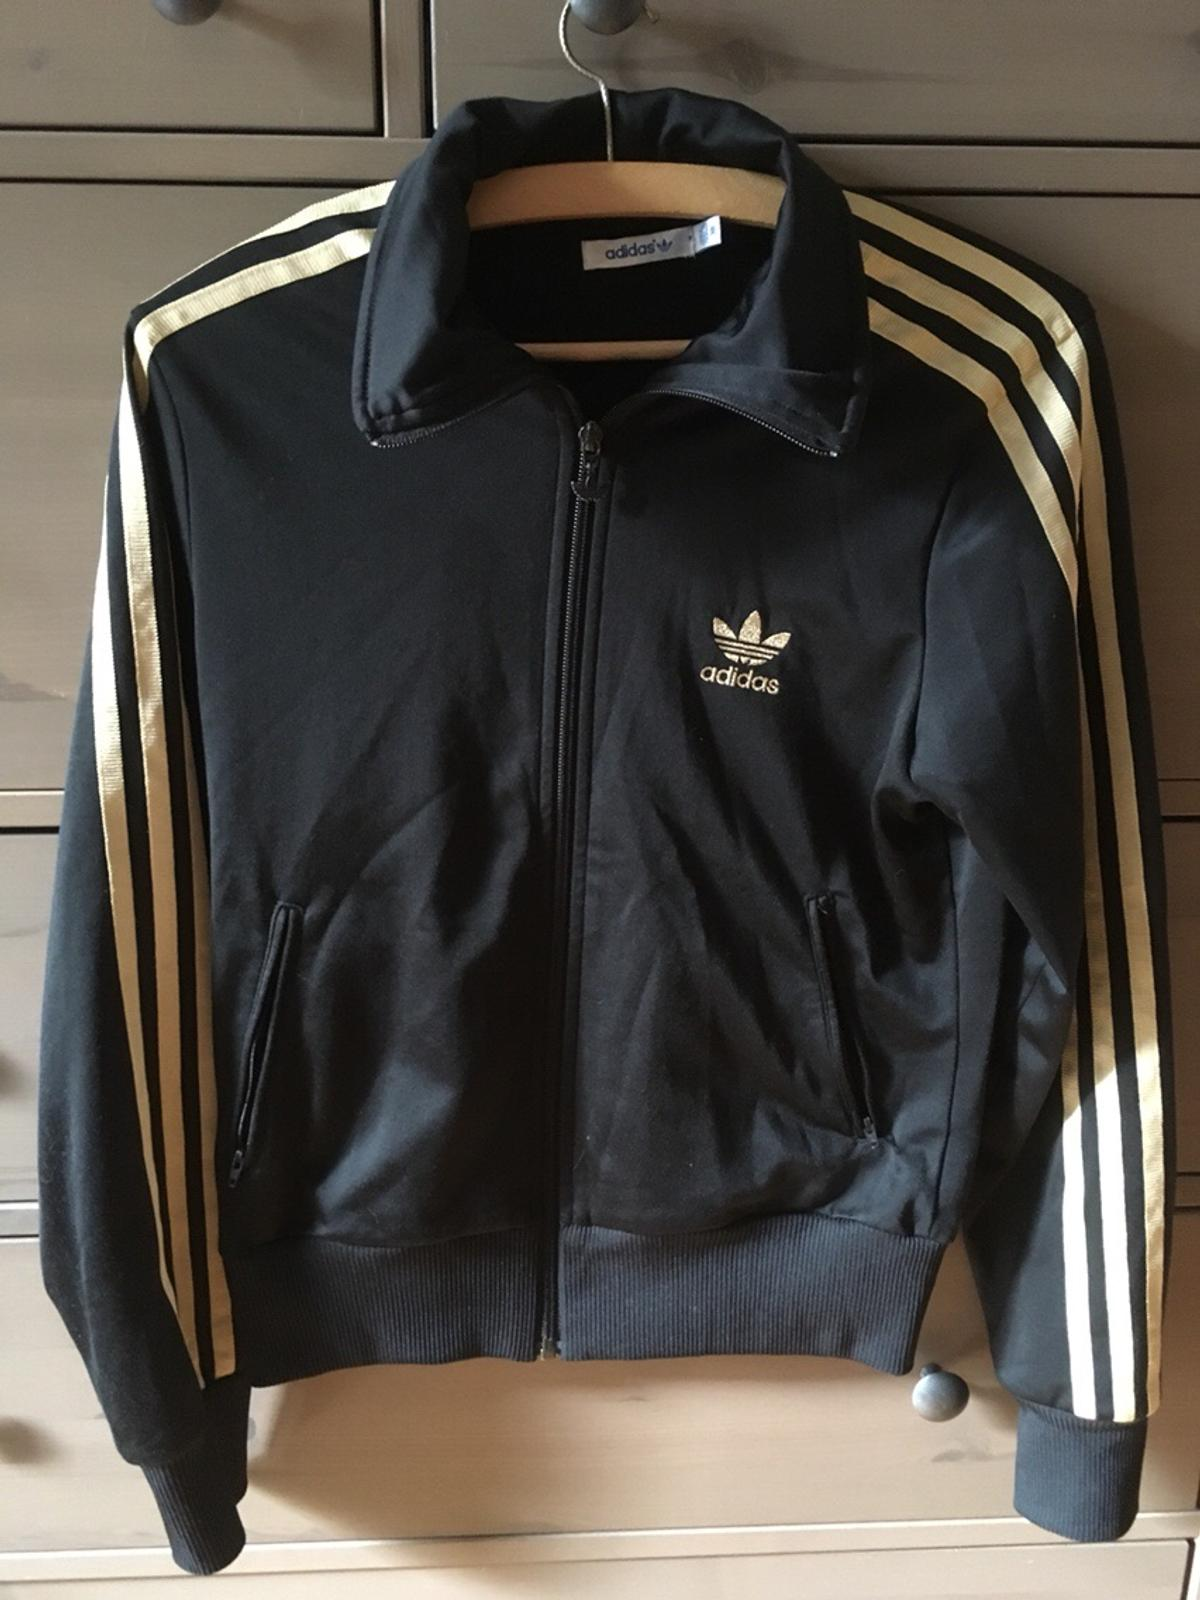 Adidas firebird TT black and gold track jacket NWT